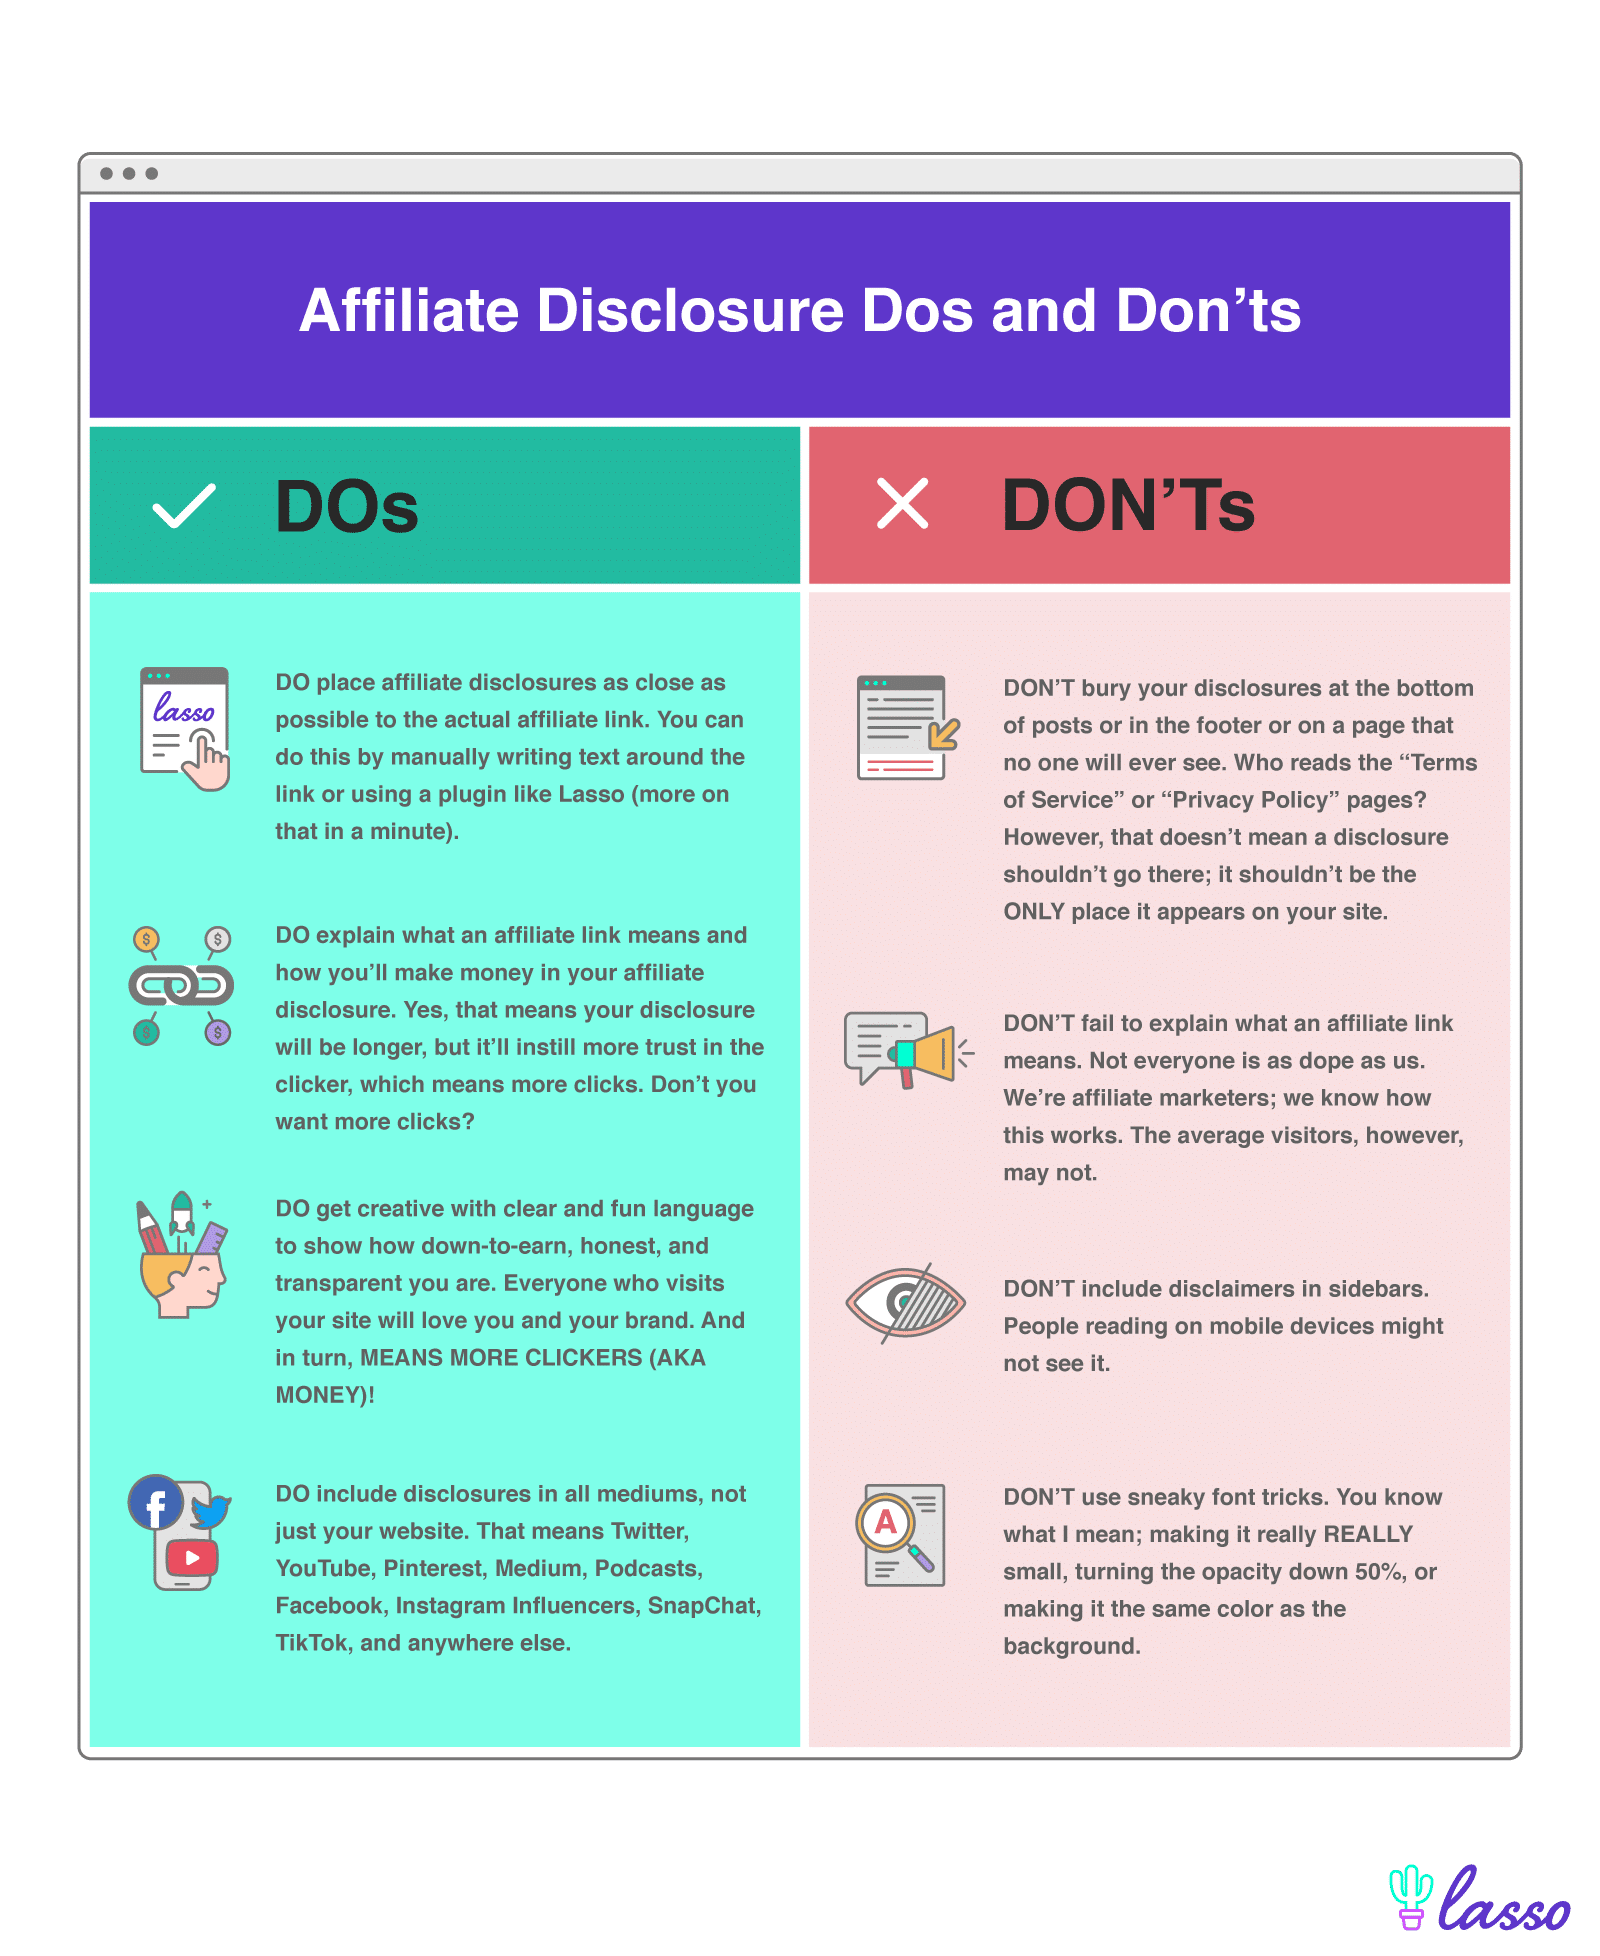 affiliate dos and don'ts comparison side by side green and red columns